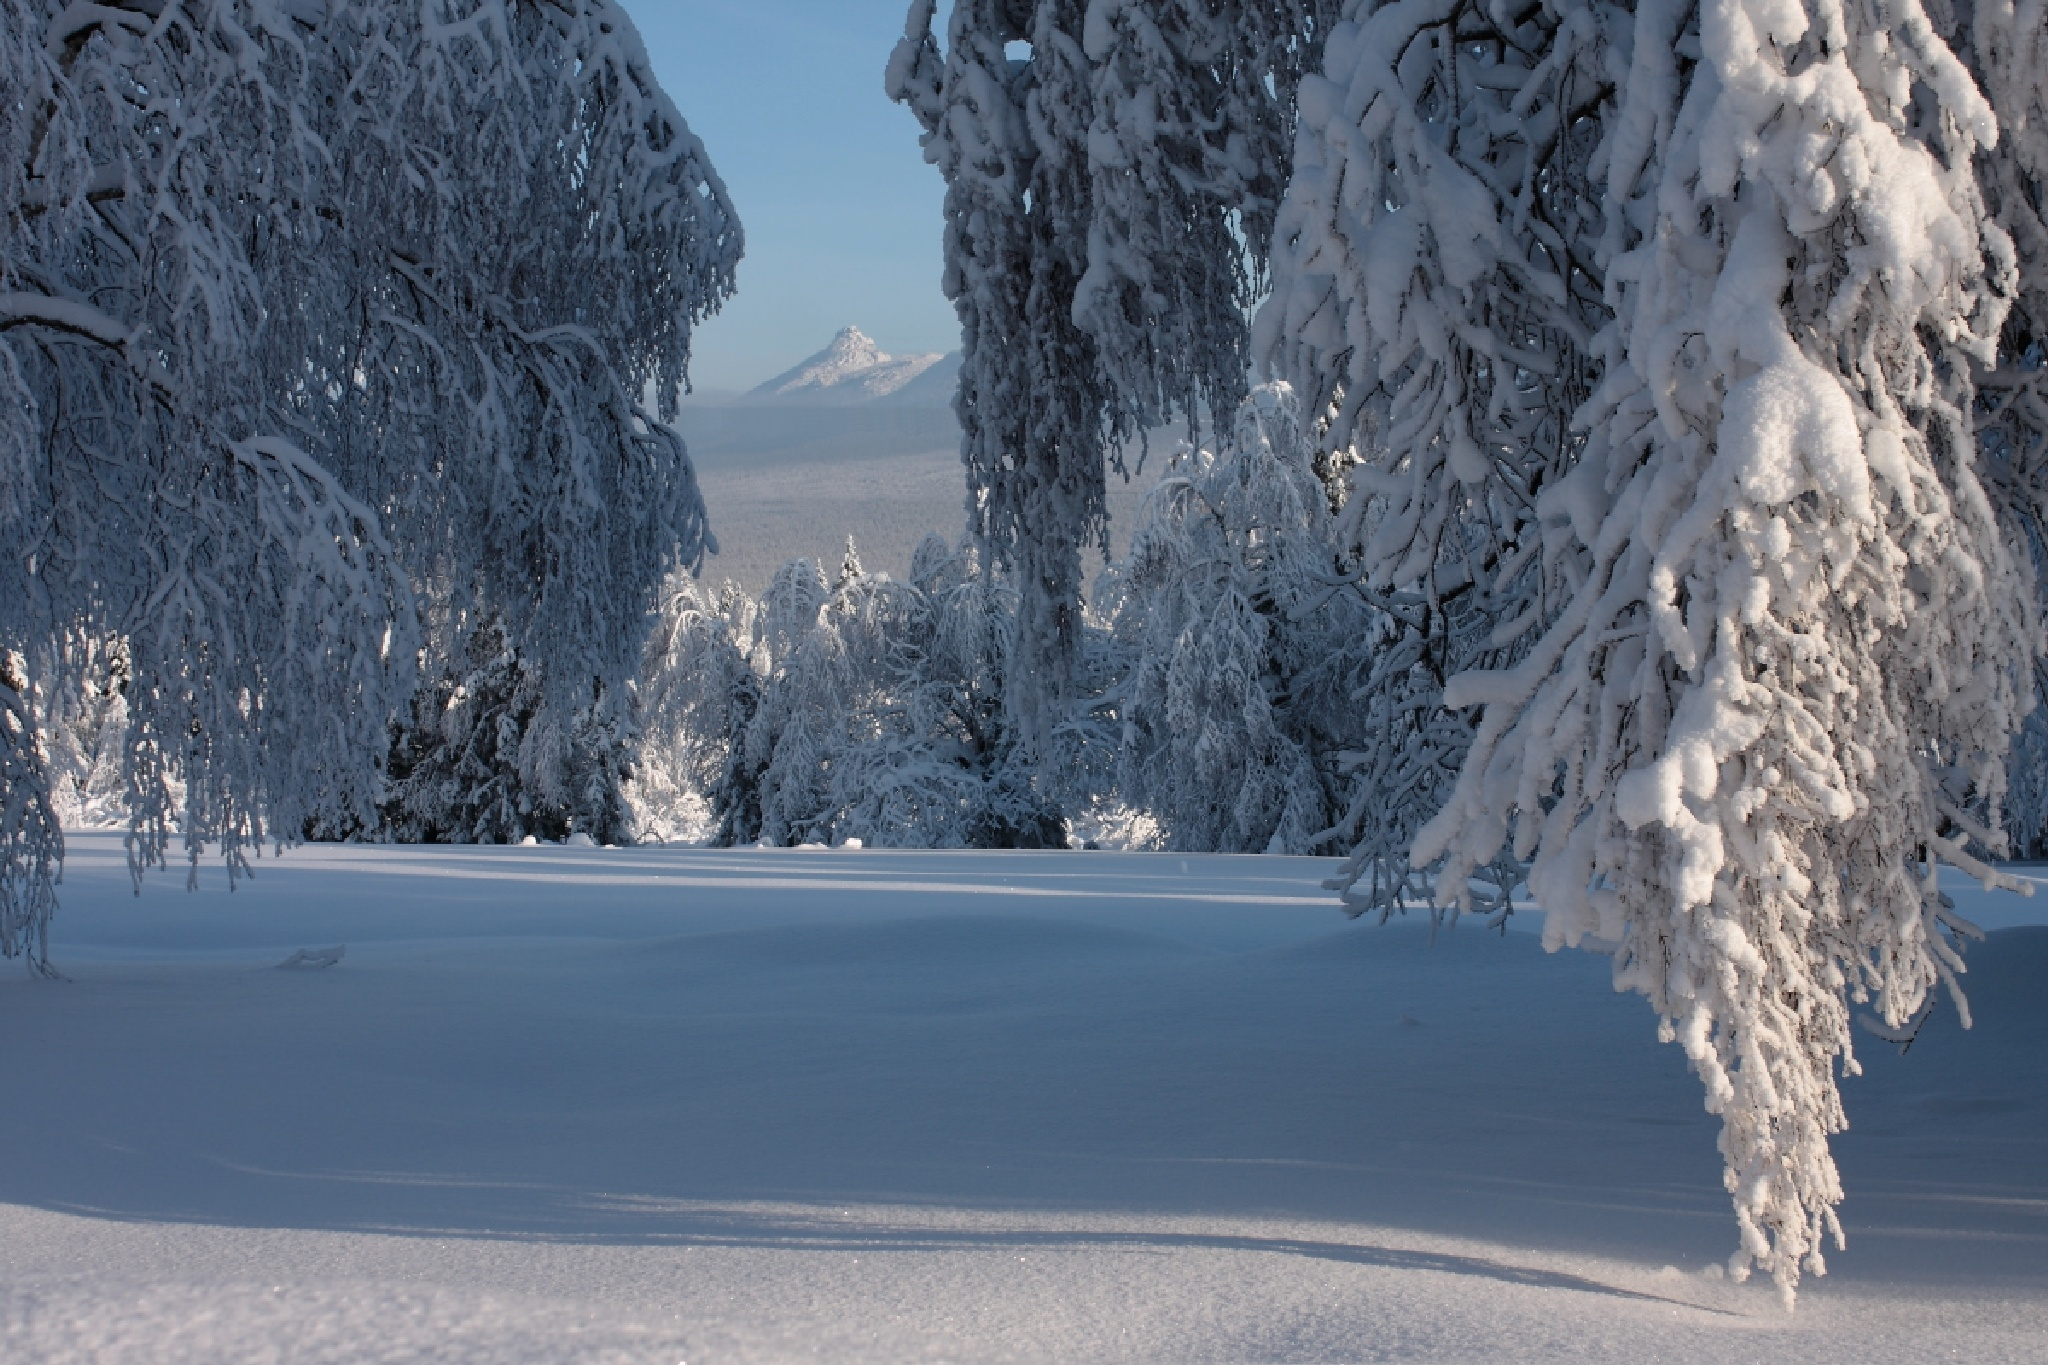 Winter in the mountains by Alexey Komarov